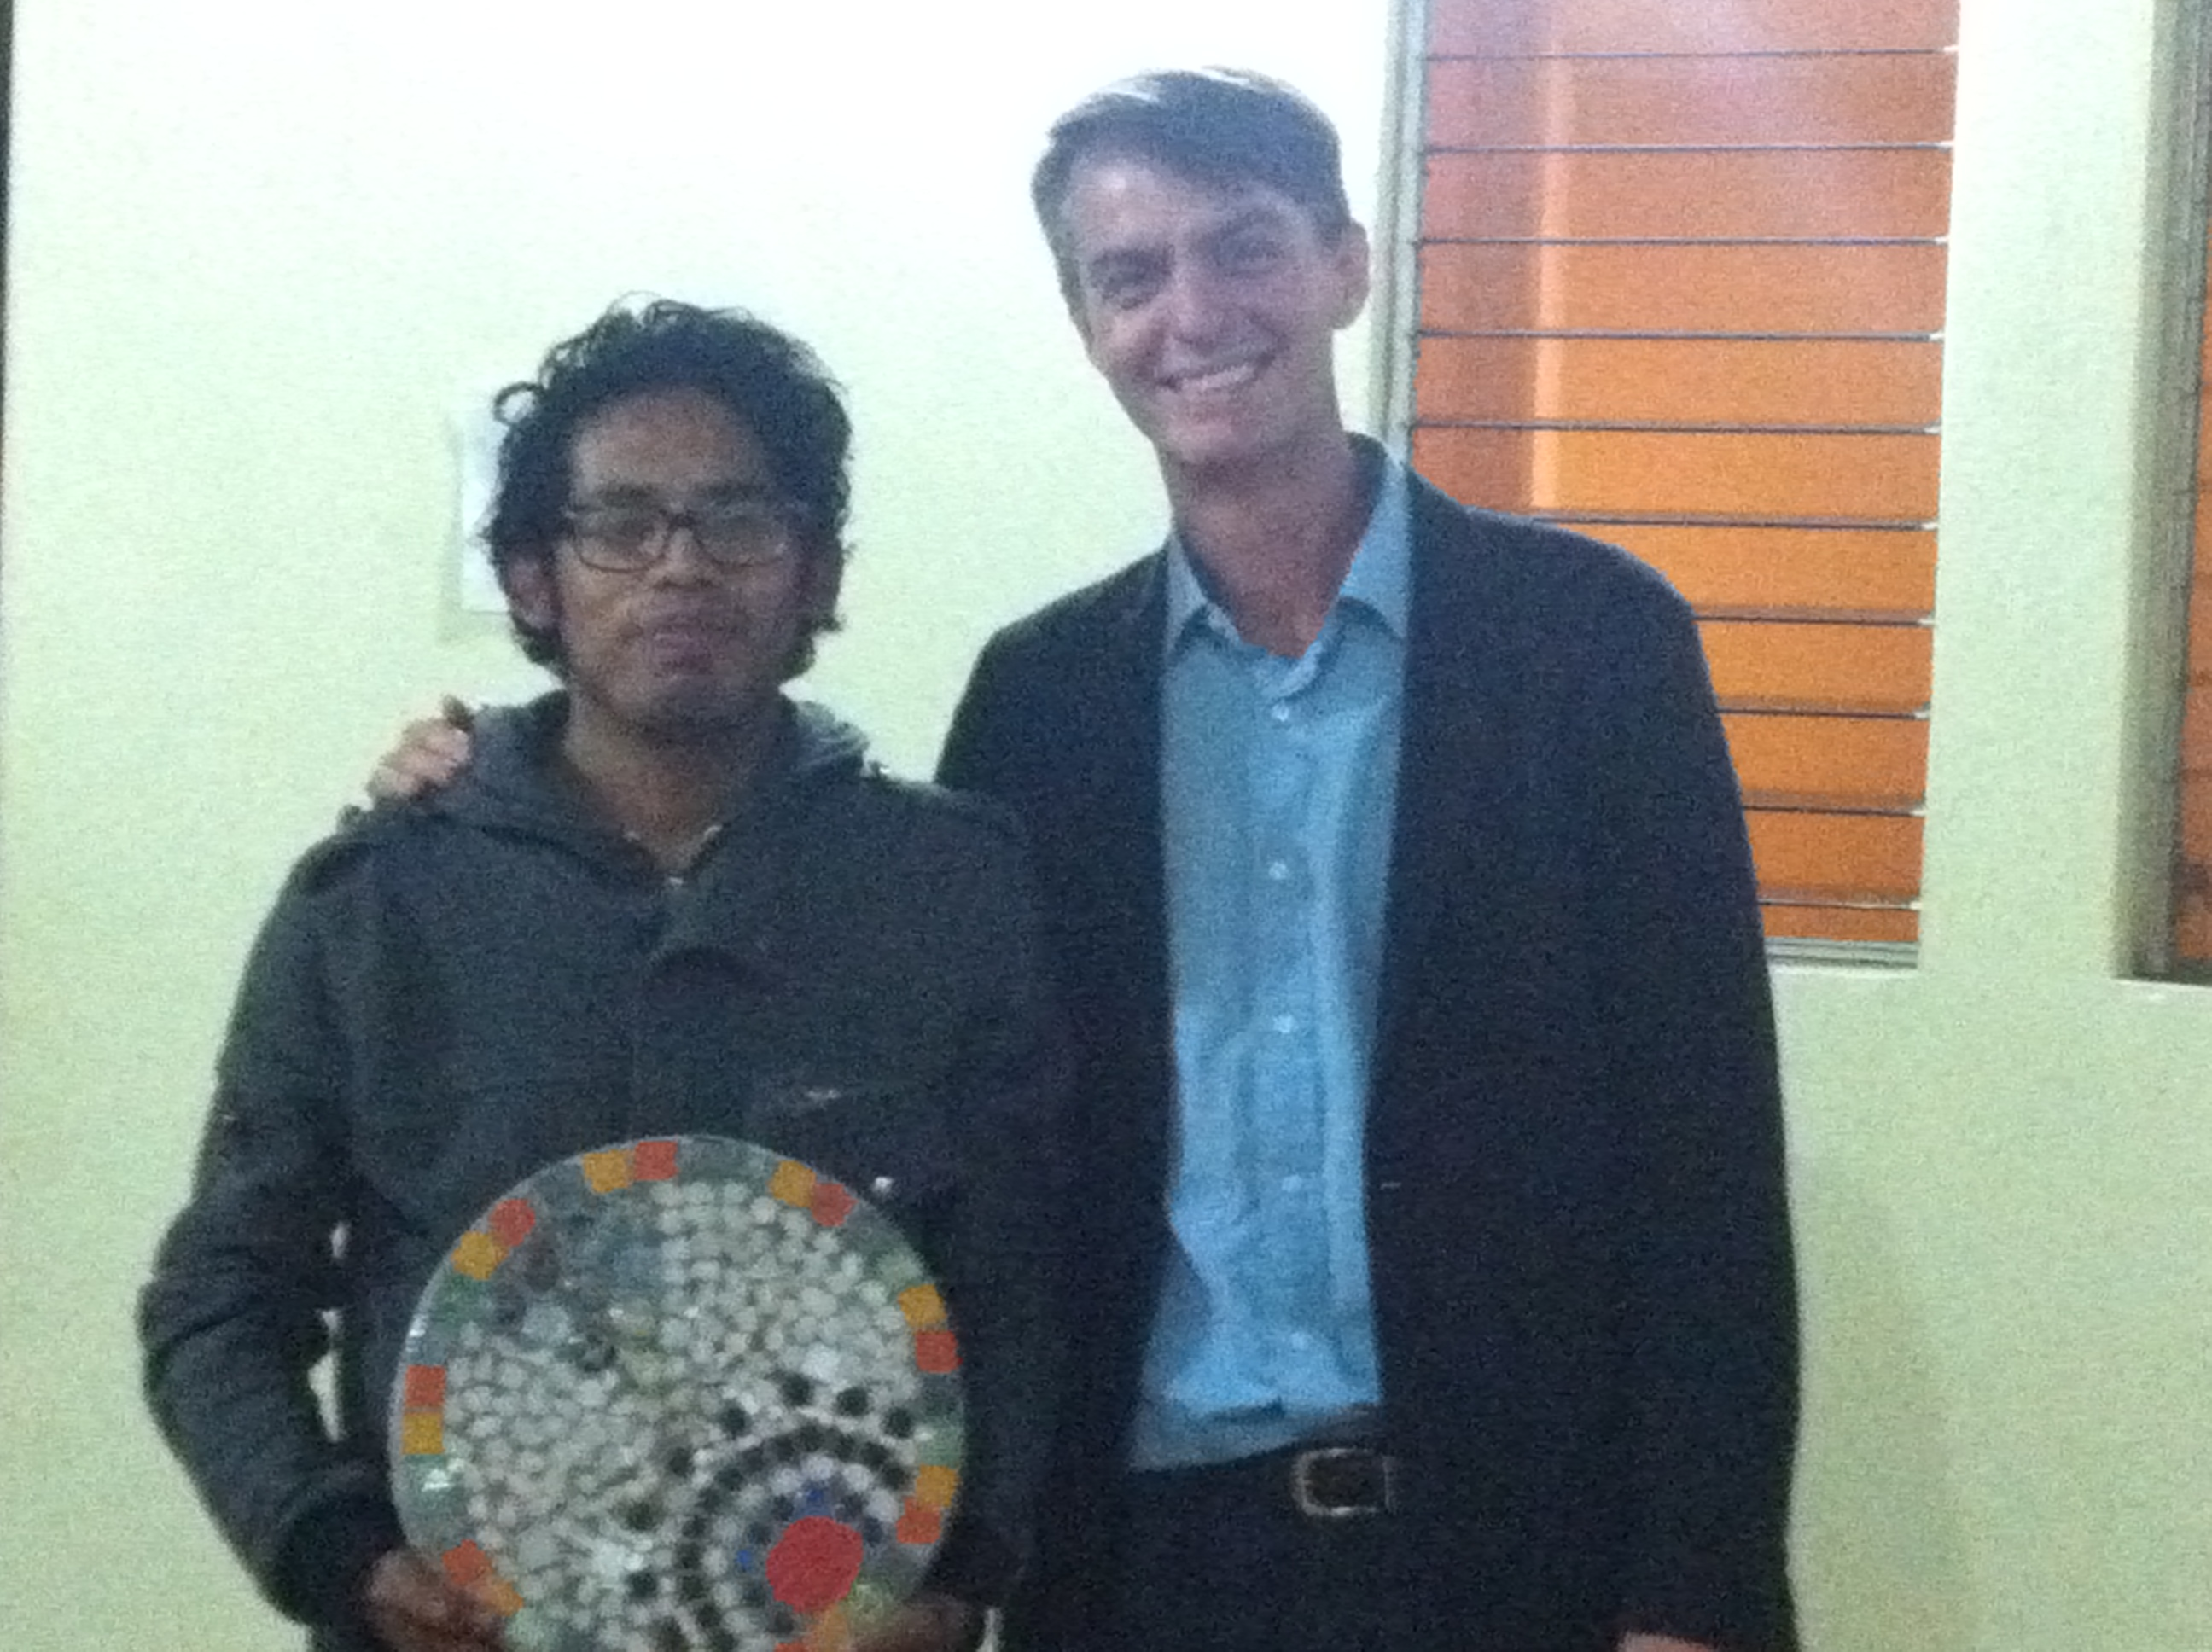 Student artist with mosaic